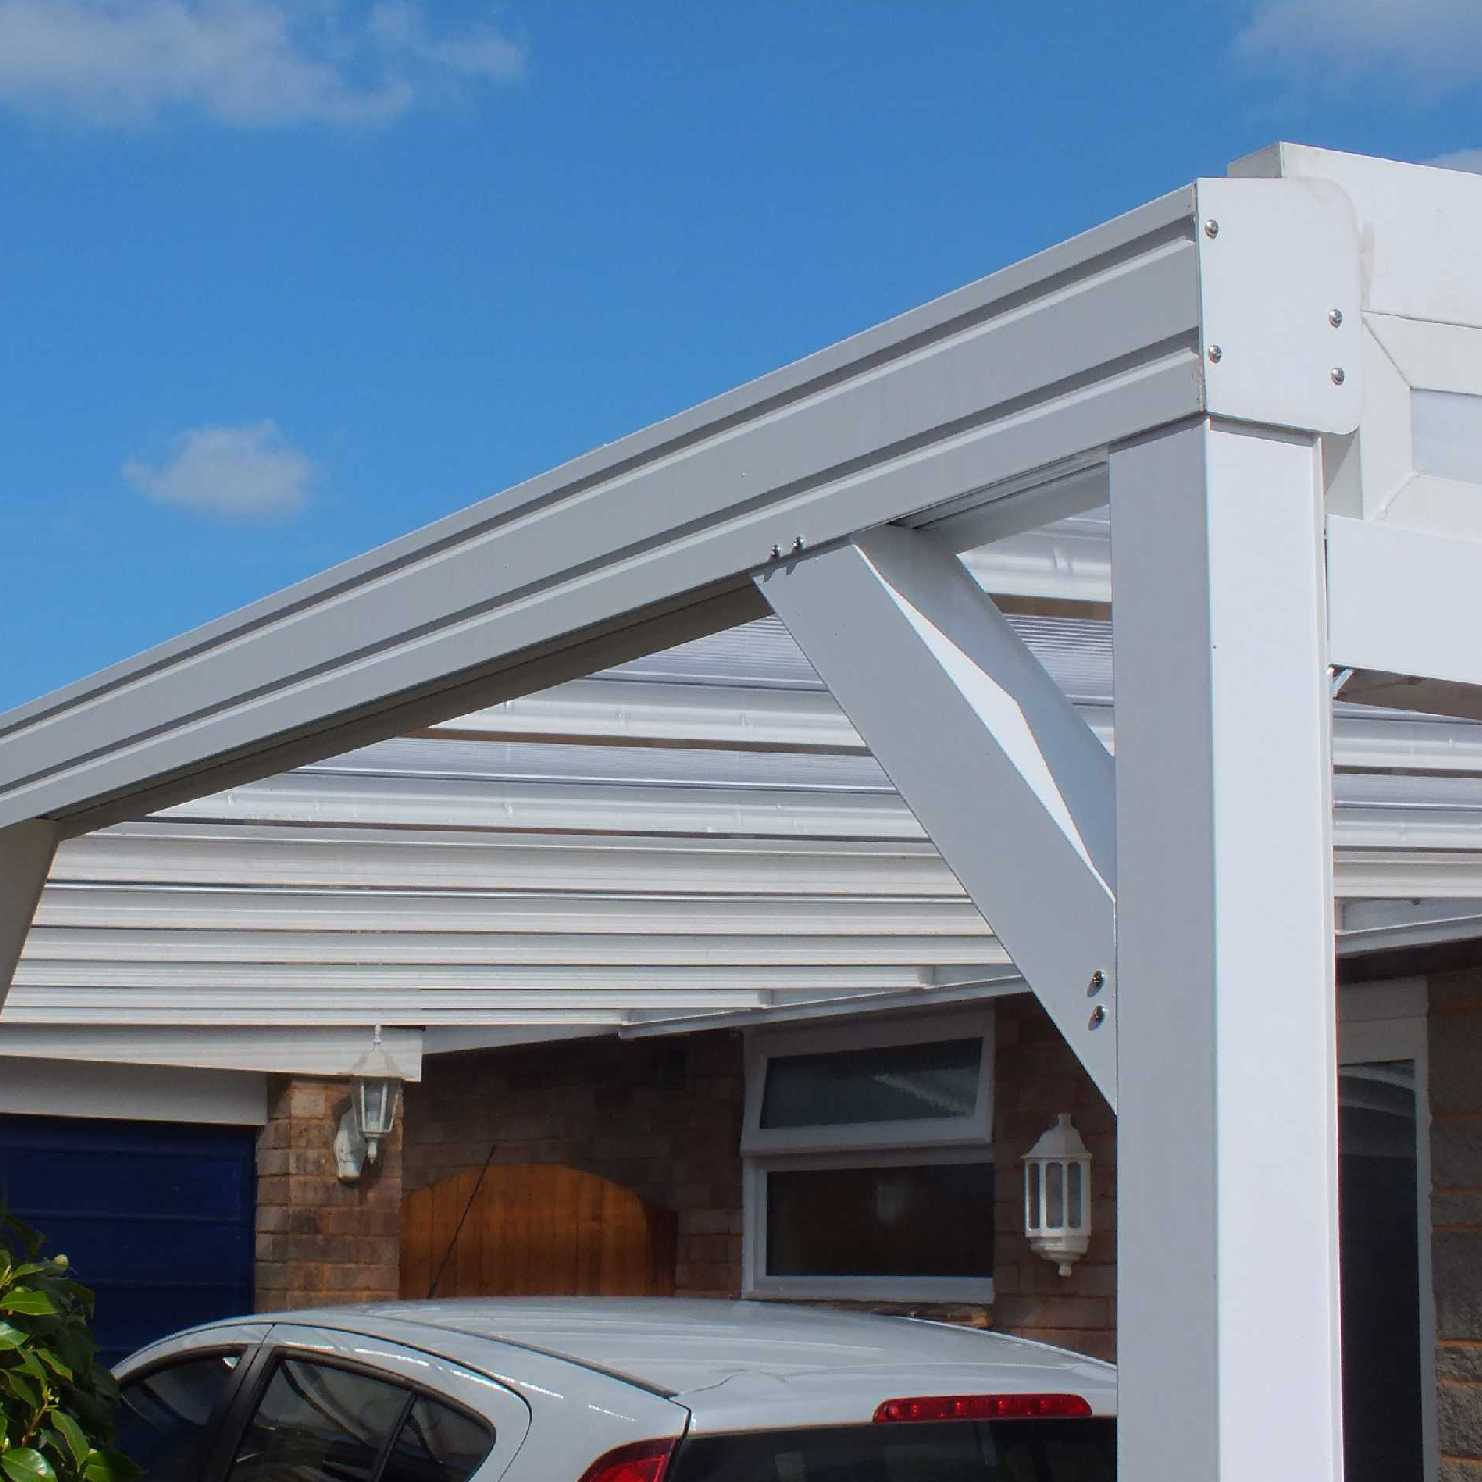 Buy Omega Smart White Lean-To Canopy with 16mm Polycarbonate Glazing - 8.0m (W) x 4.5m (P), (4) Supporting Posts online today